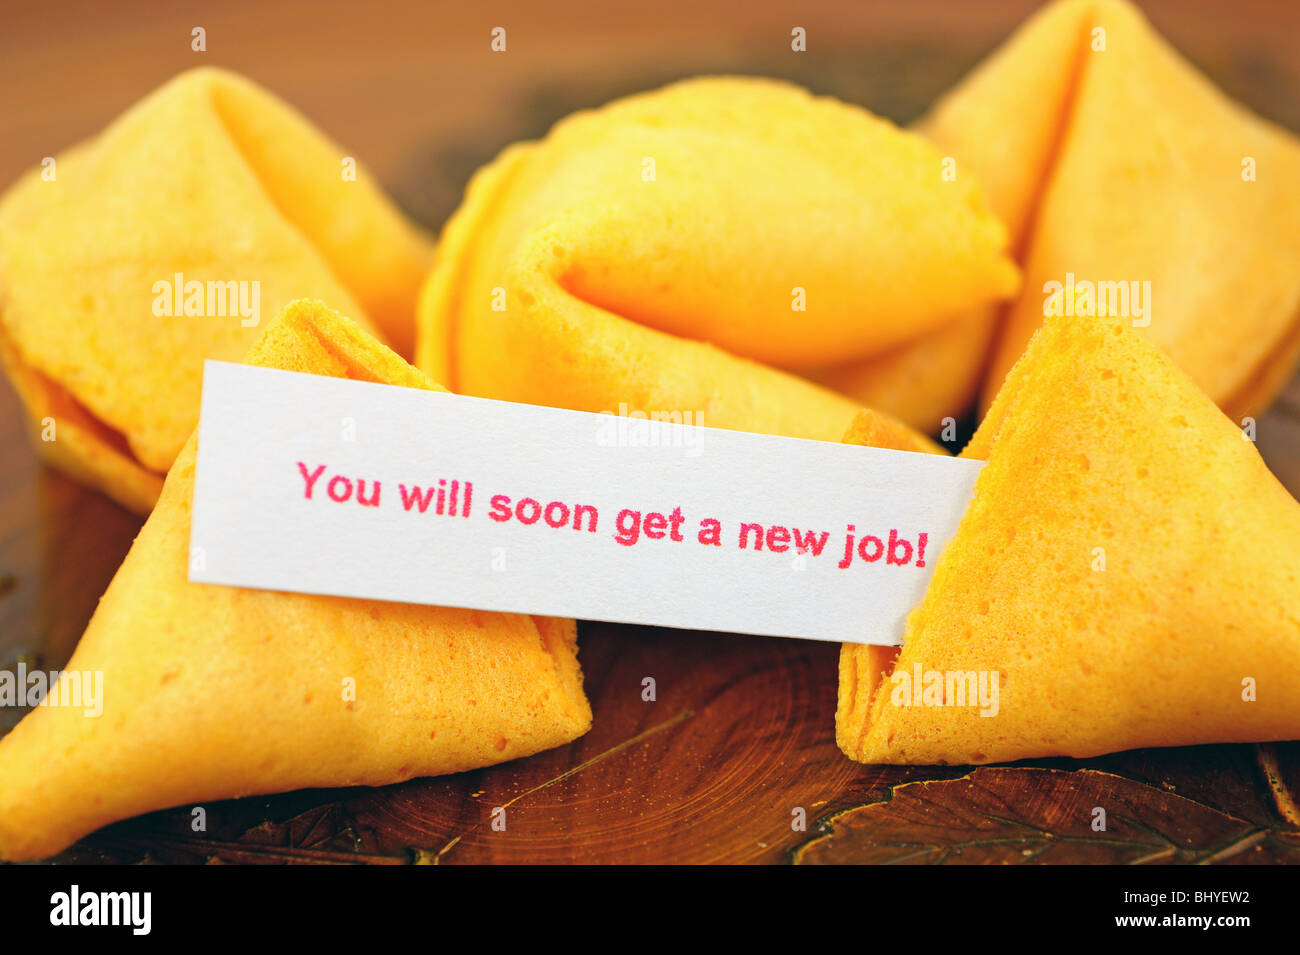 Fortune cookie with job prediction - Stock Image